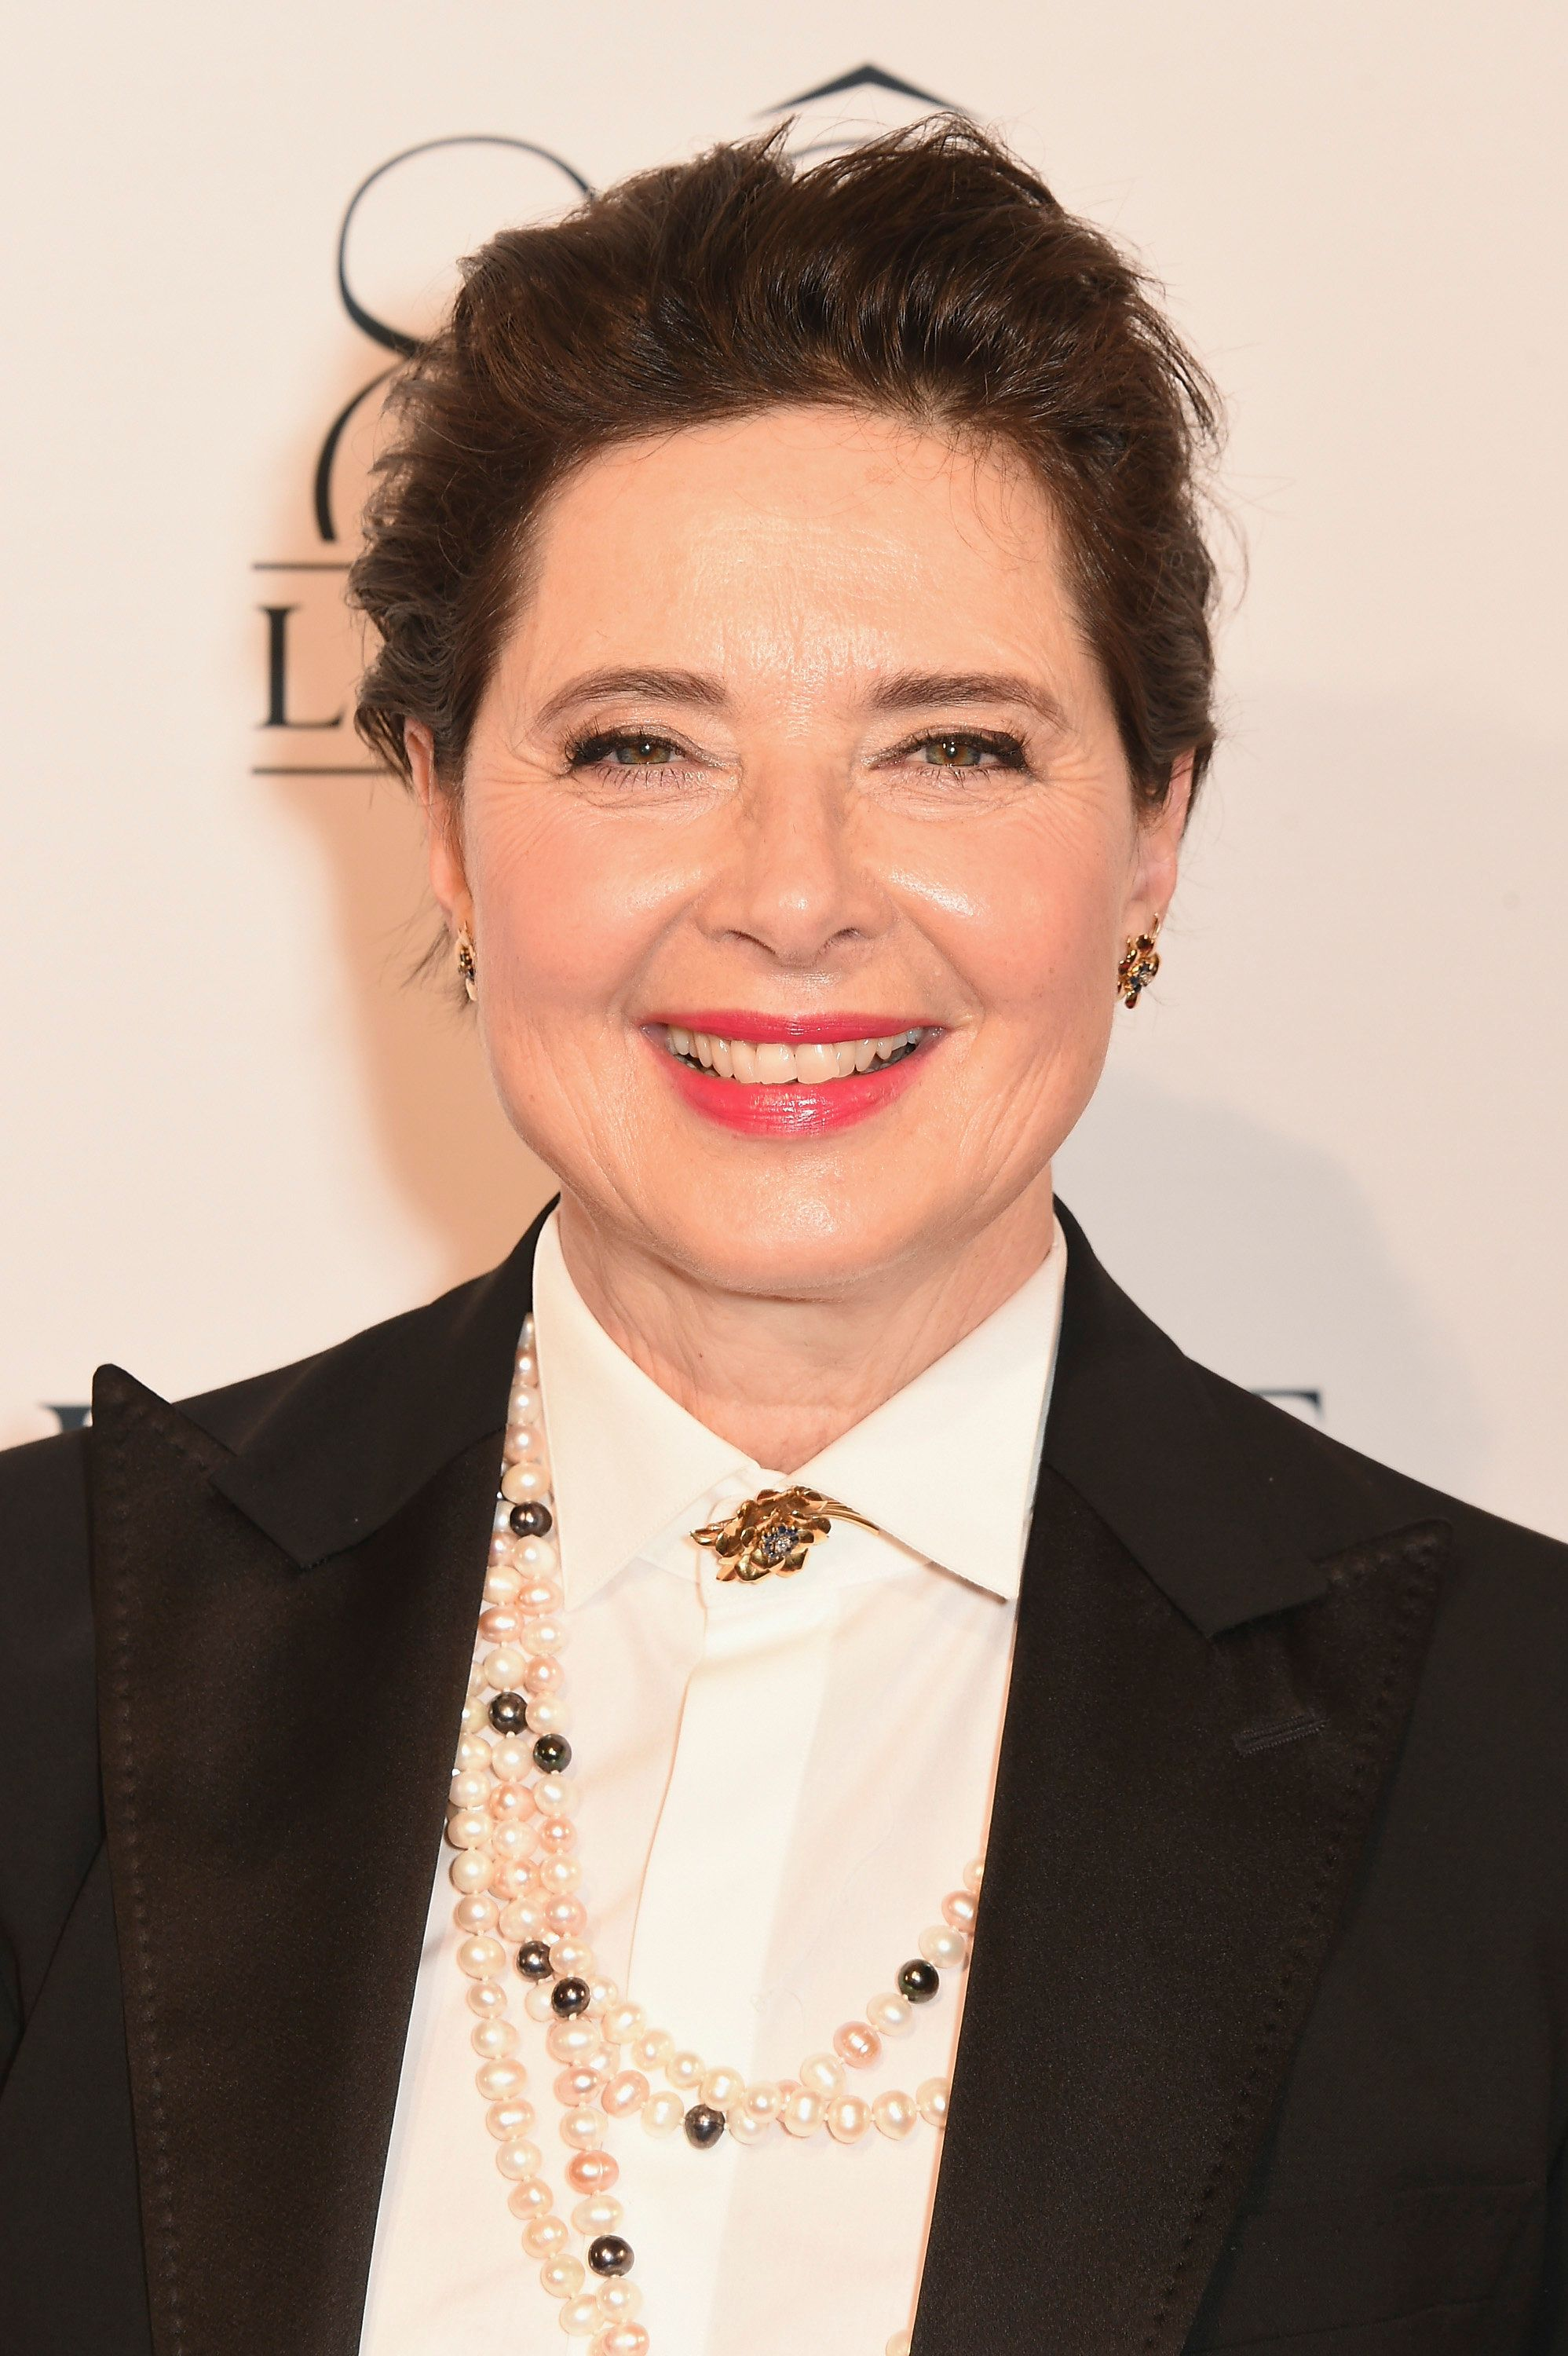 PARIS, FRANCE - JULY 07: Isabella Rossellini attends the photocall for the Lancome Celebrates 80 Years of Beauty With All Its Ambassadresses on July 7, 2015 in Paris, France.  (Photo by David M. Benett/Dave Benett/Getty Images for Lancome)